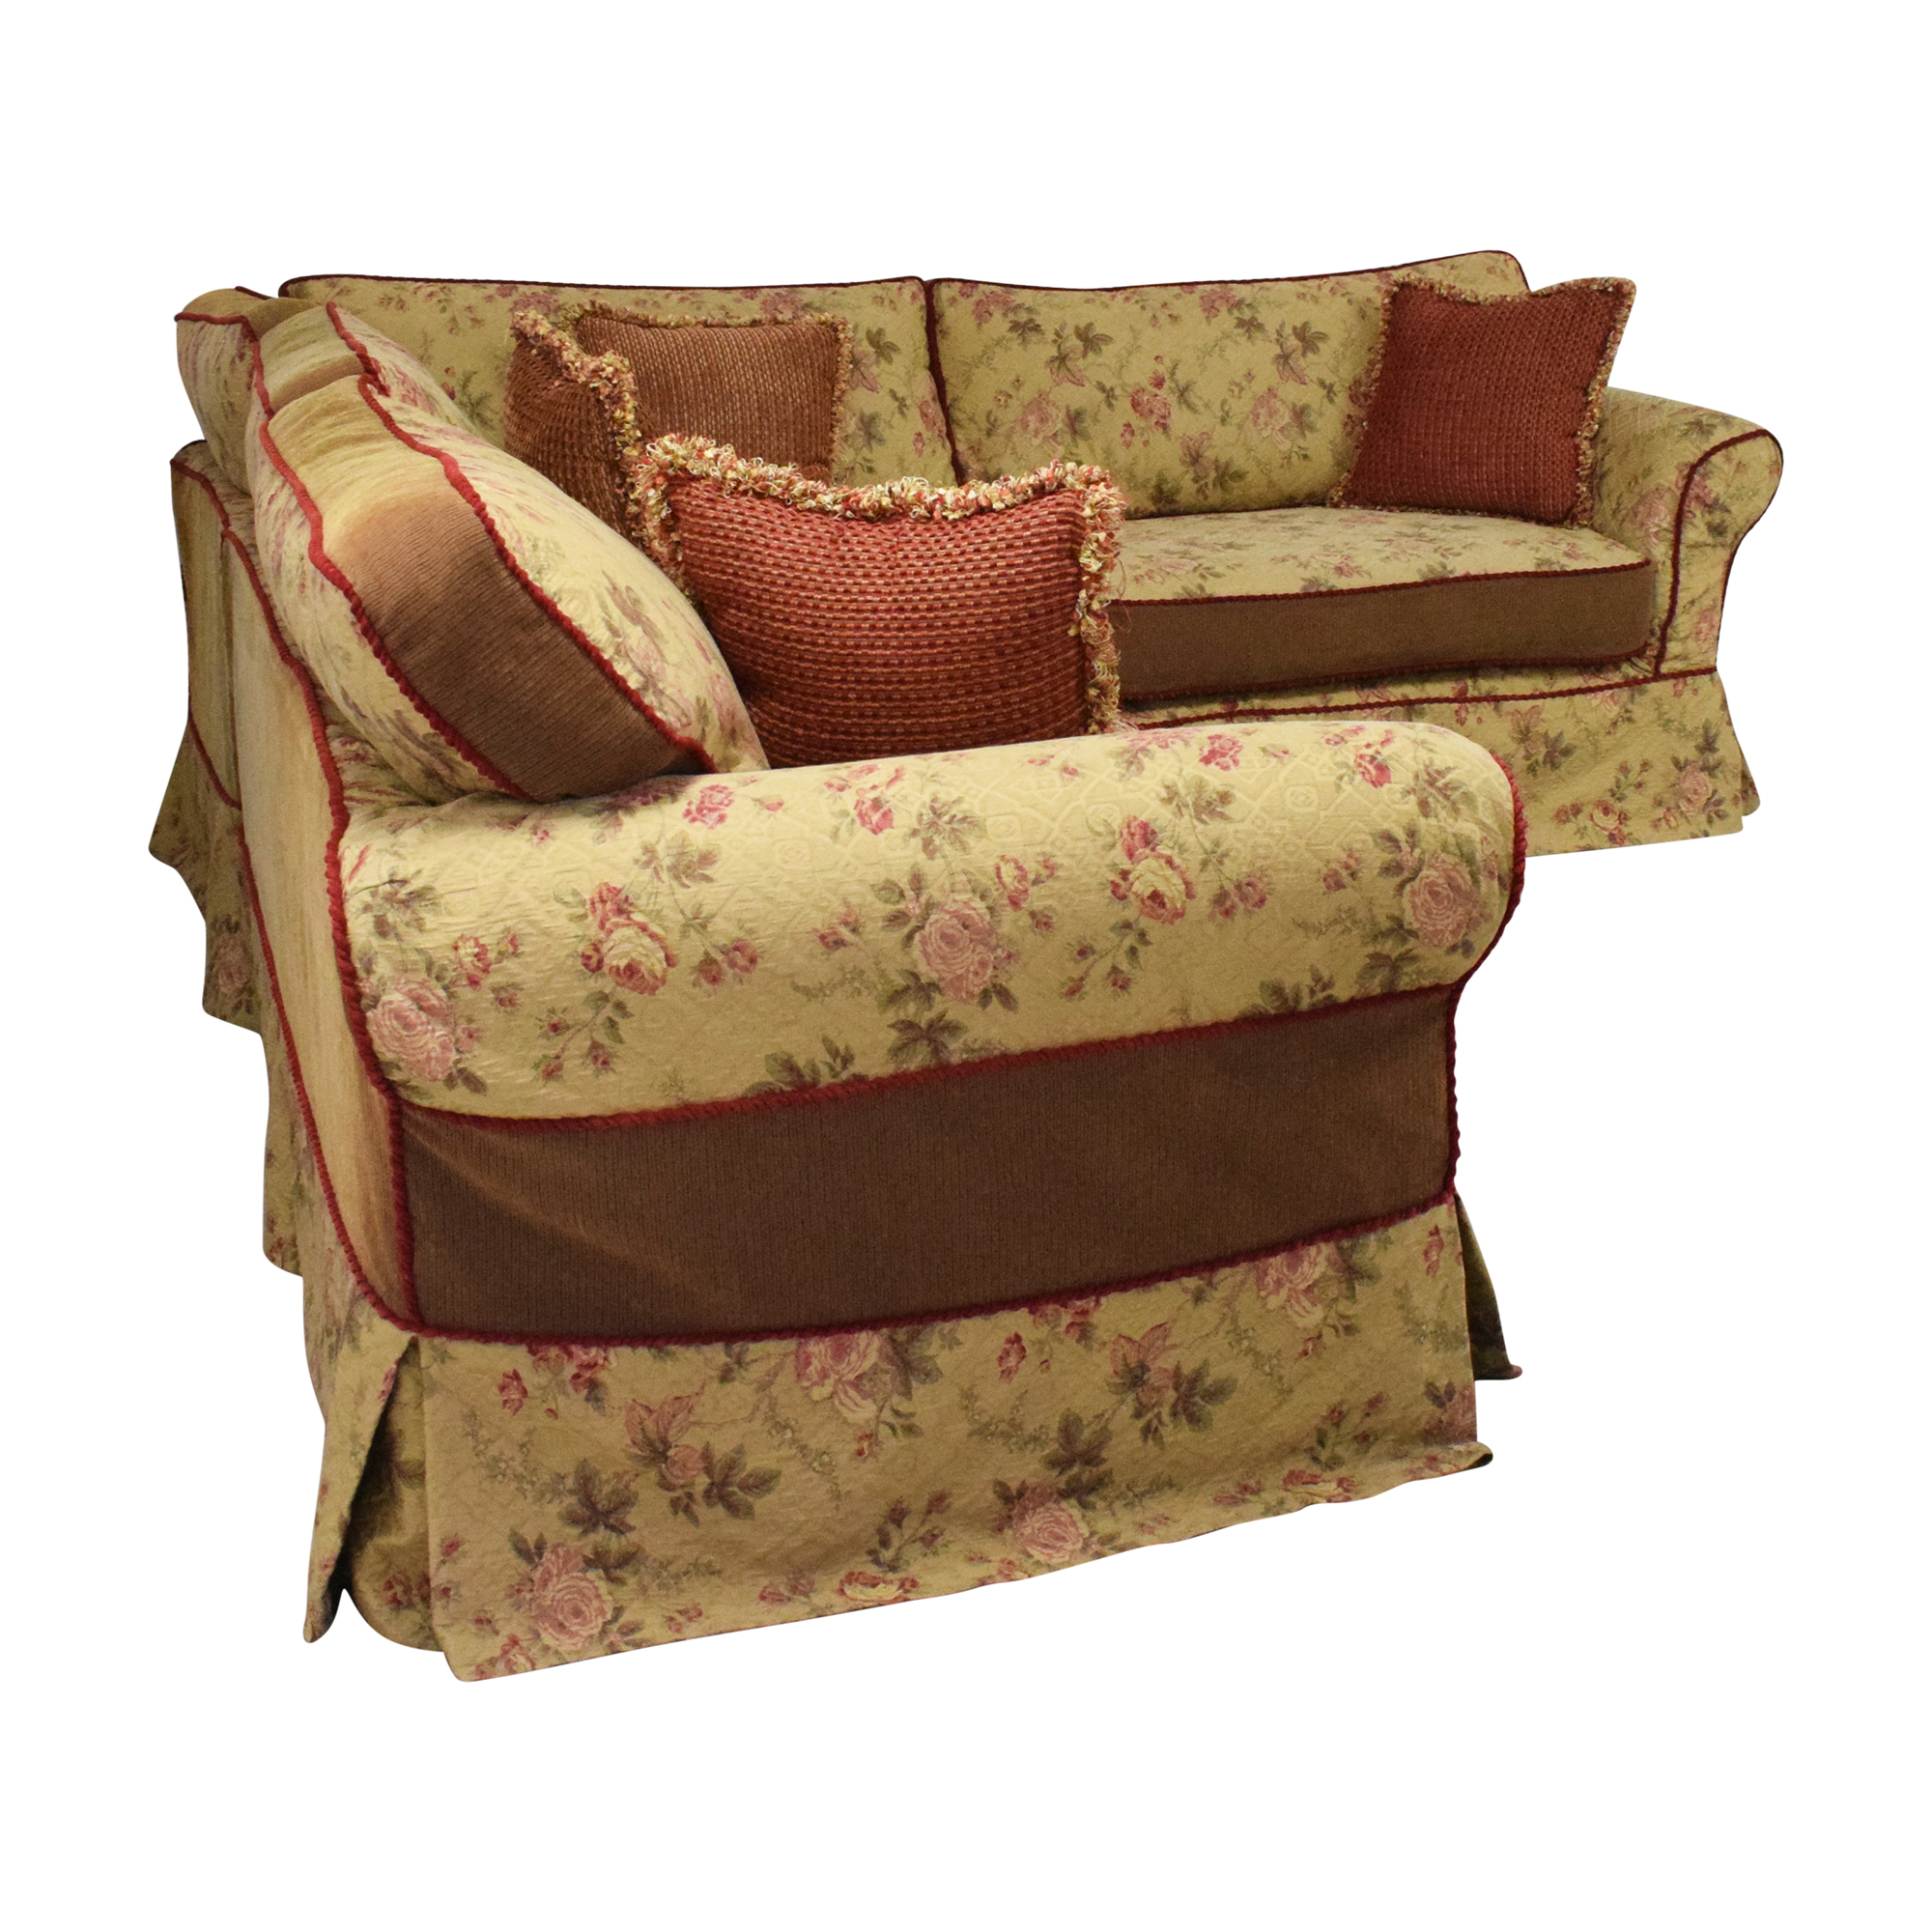 Platypus Platypus Roll Arm Slipcovered Sectional Sofa discount